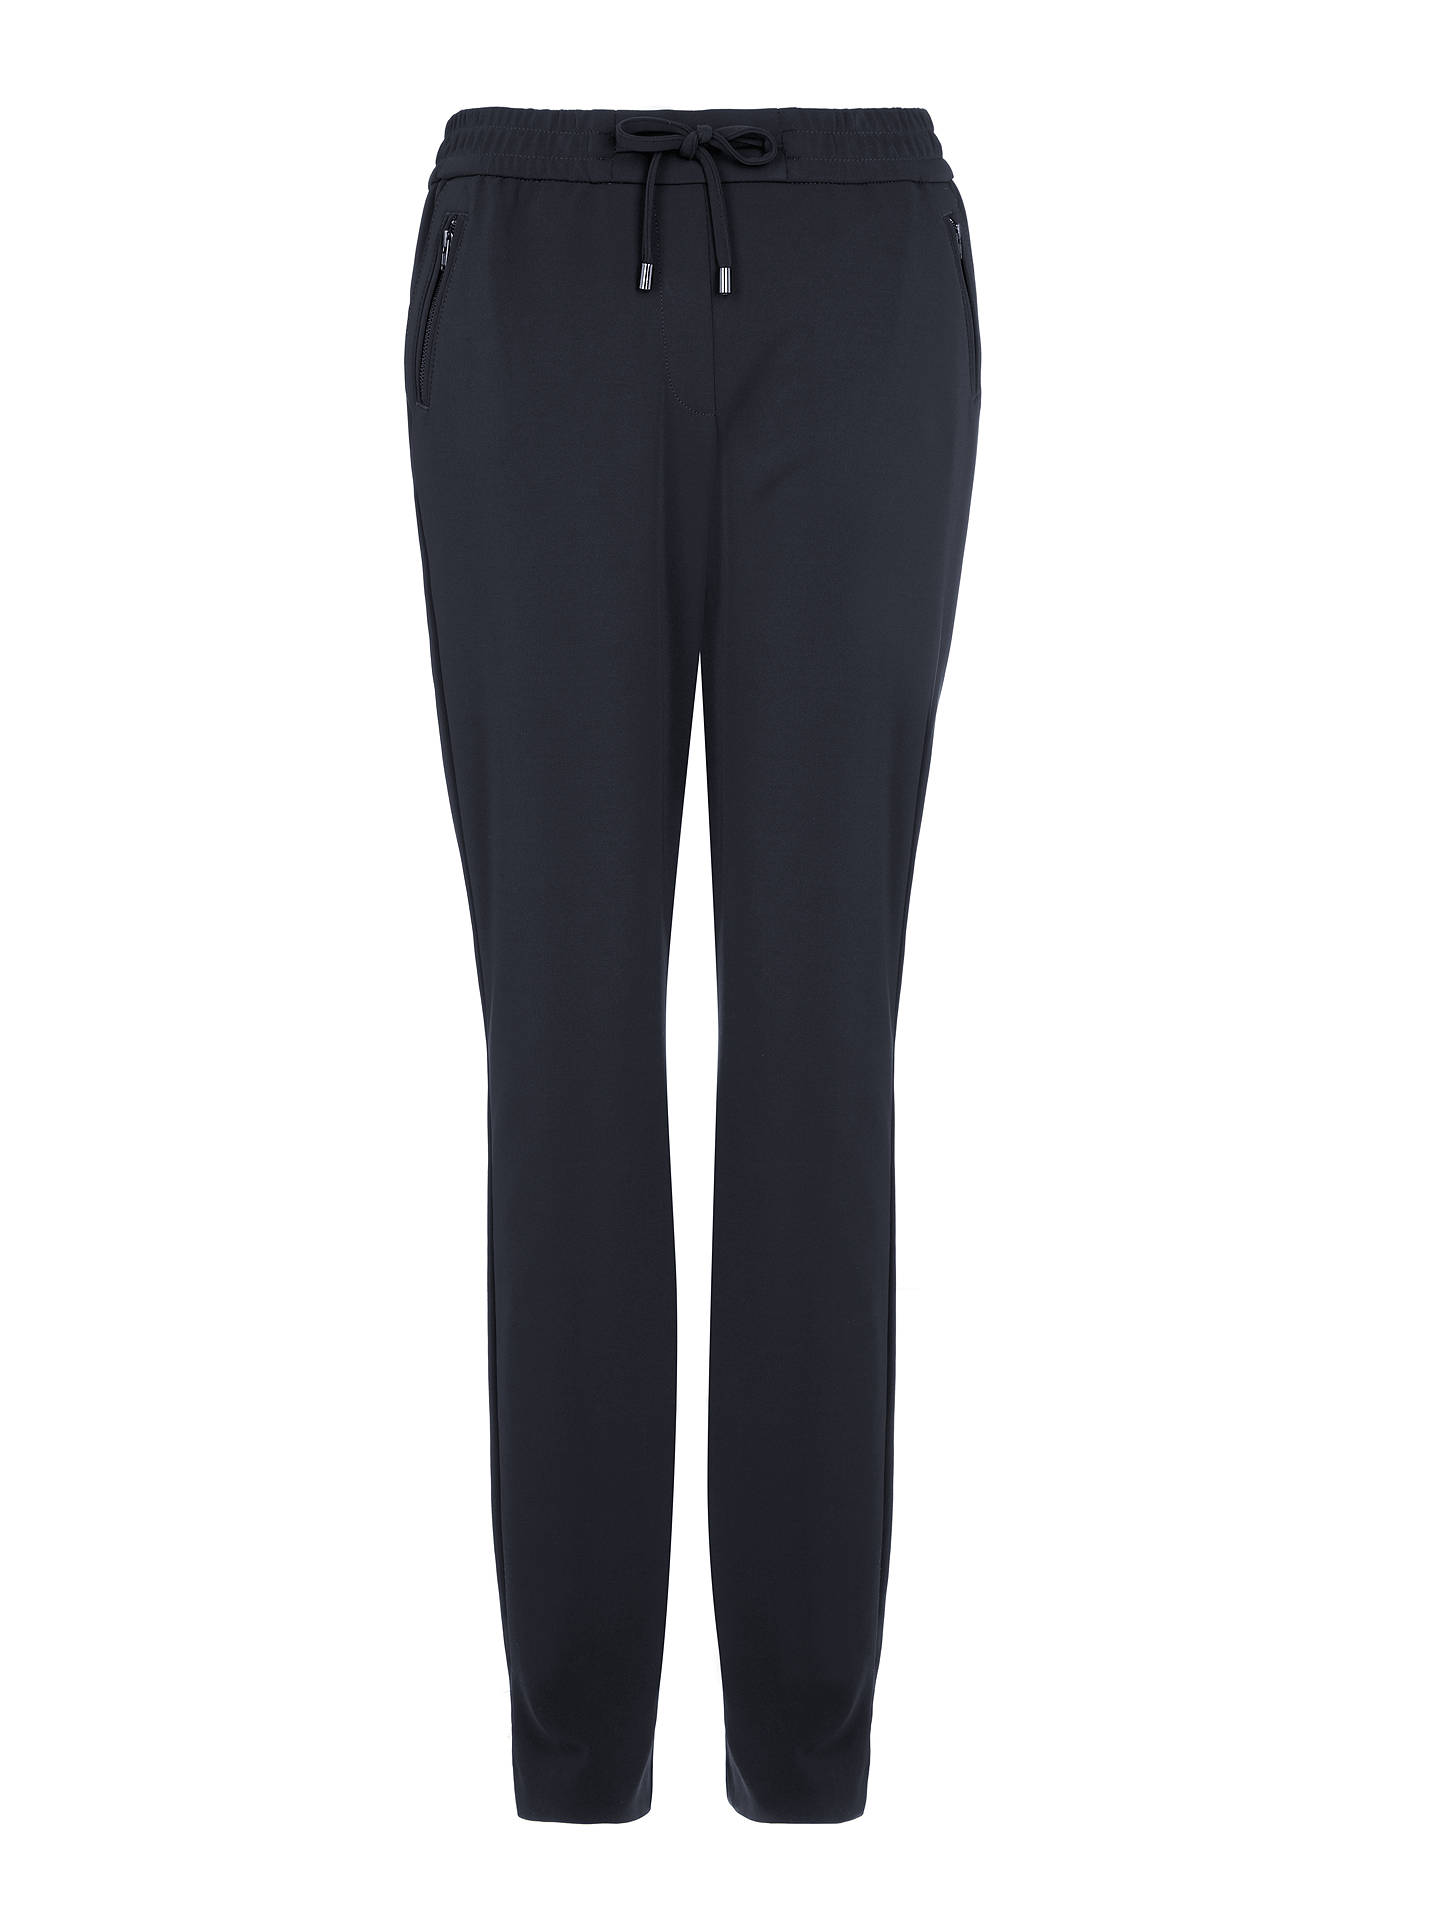 BuyGerry Weber Drawstring Trousers, Navy, 10 Online at johnlewis.com